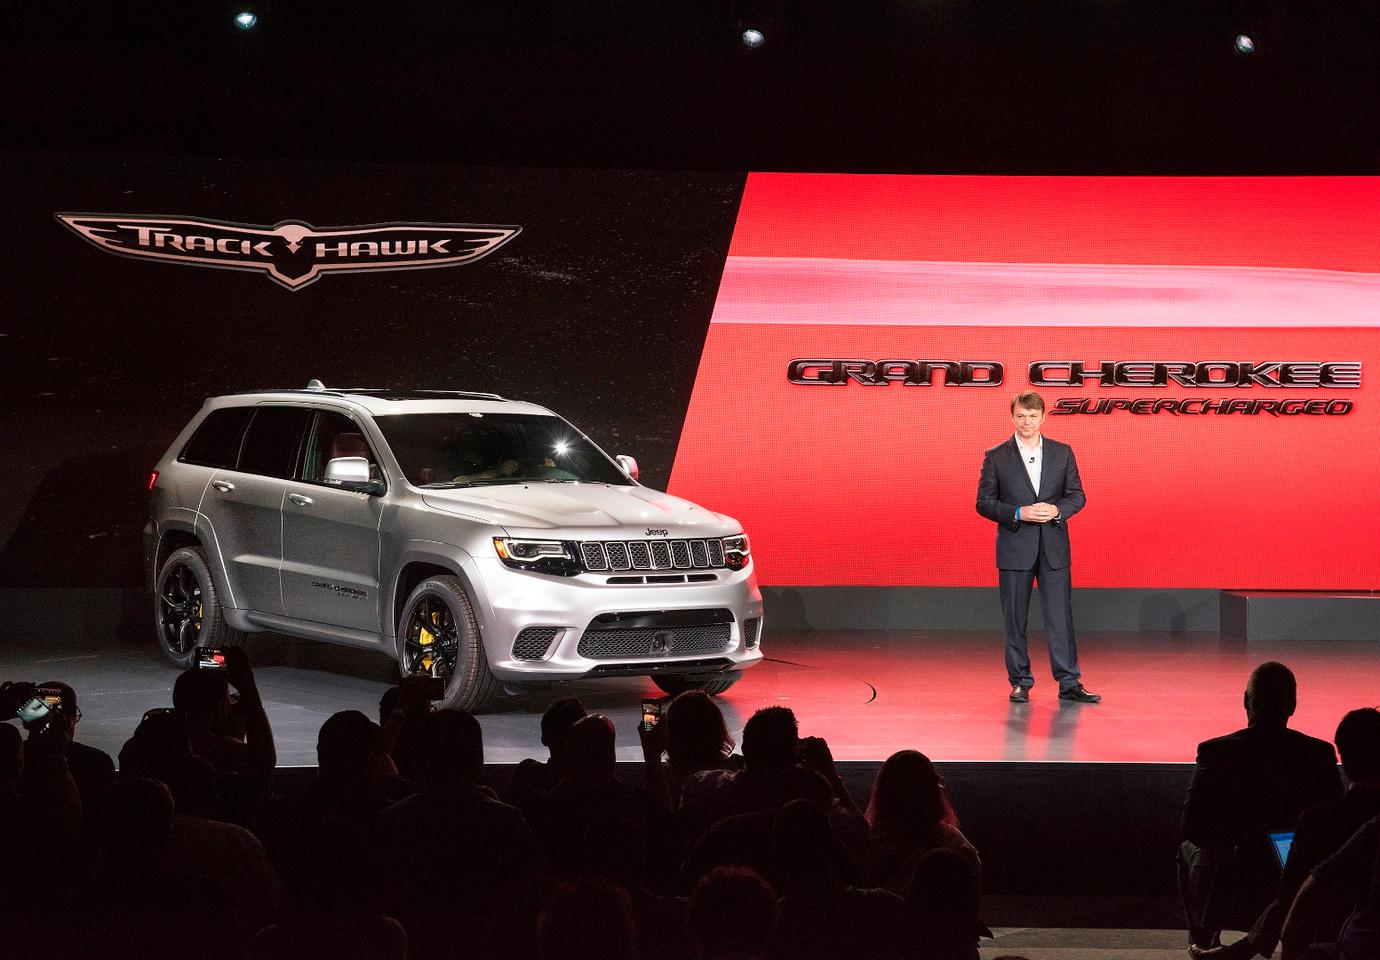 Jeep revealed the Grand Cherokee Trackhawkat the New York Auto Show back in April